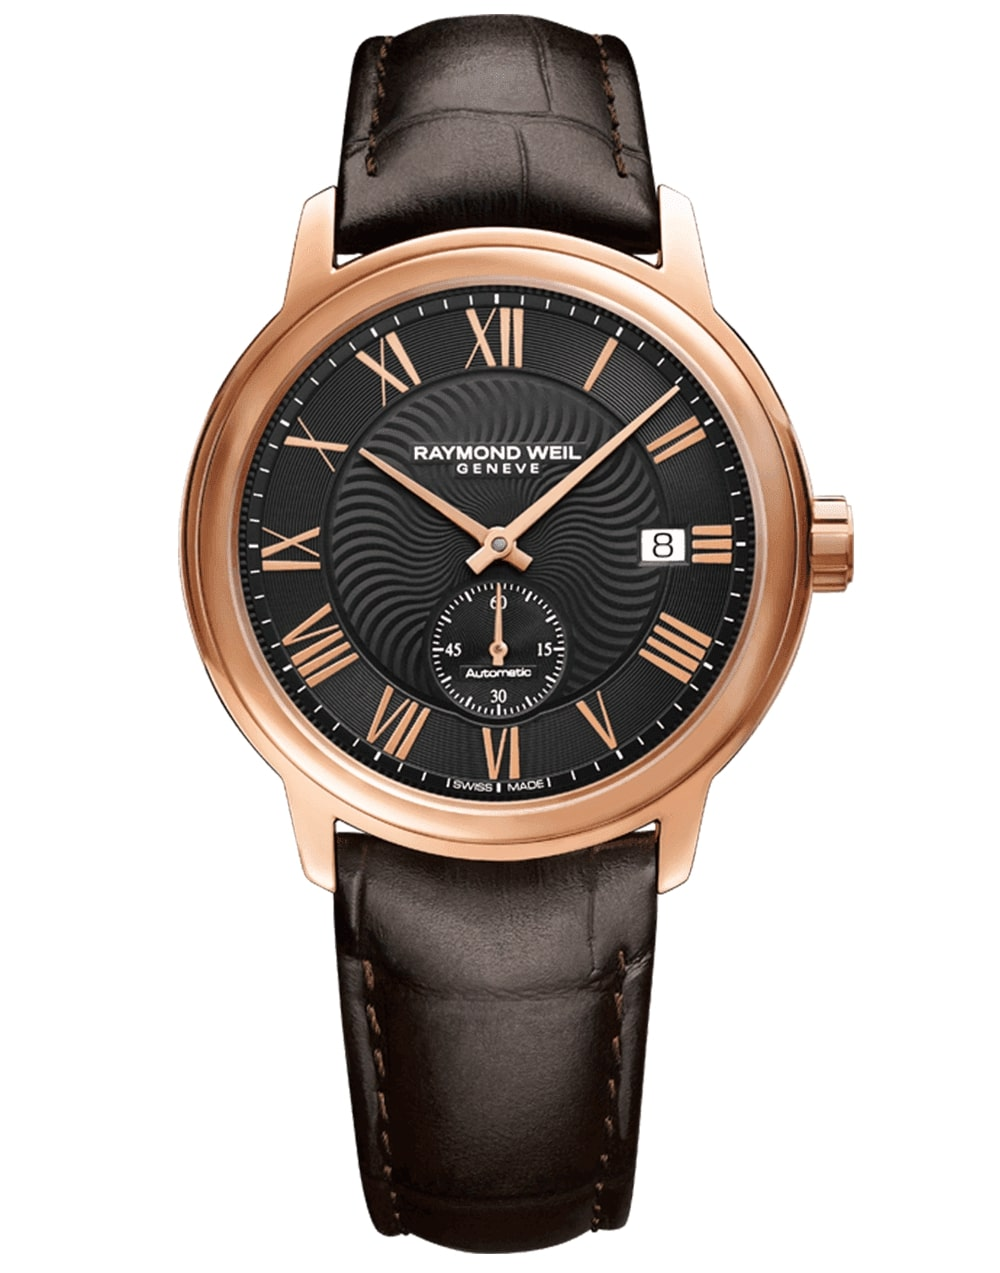 Men's Rose Gold Automatic Leather Raymond Weil Watch